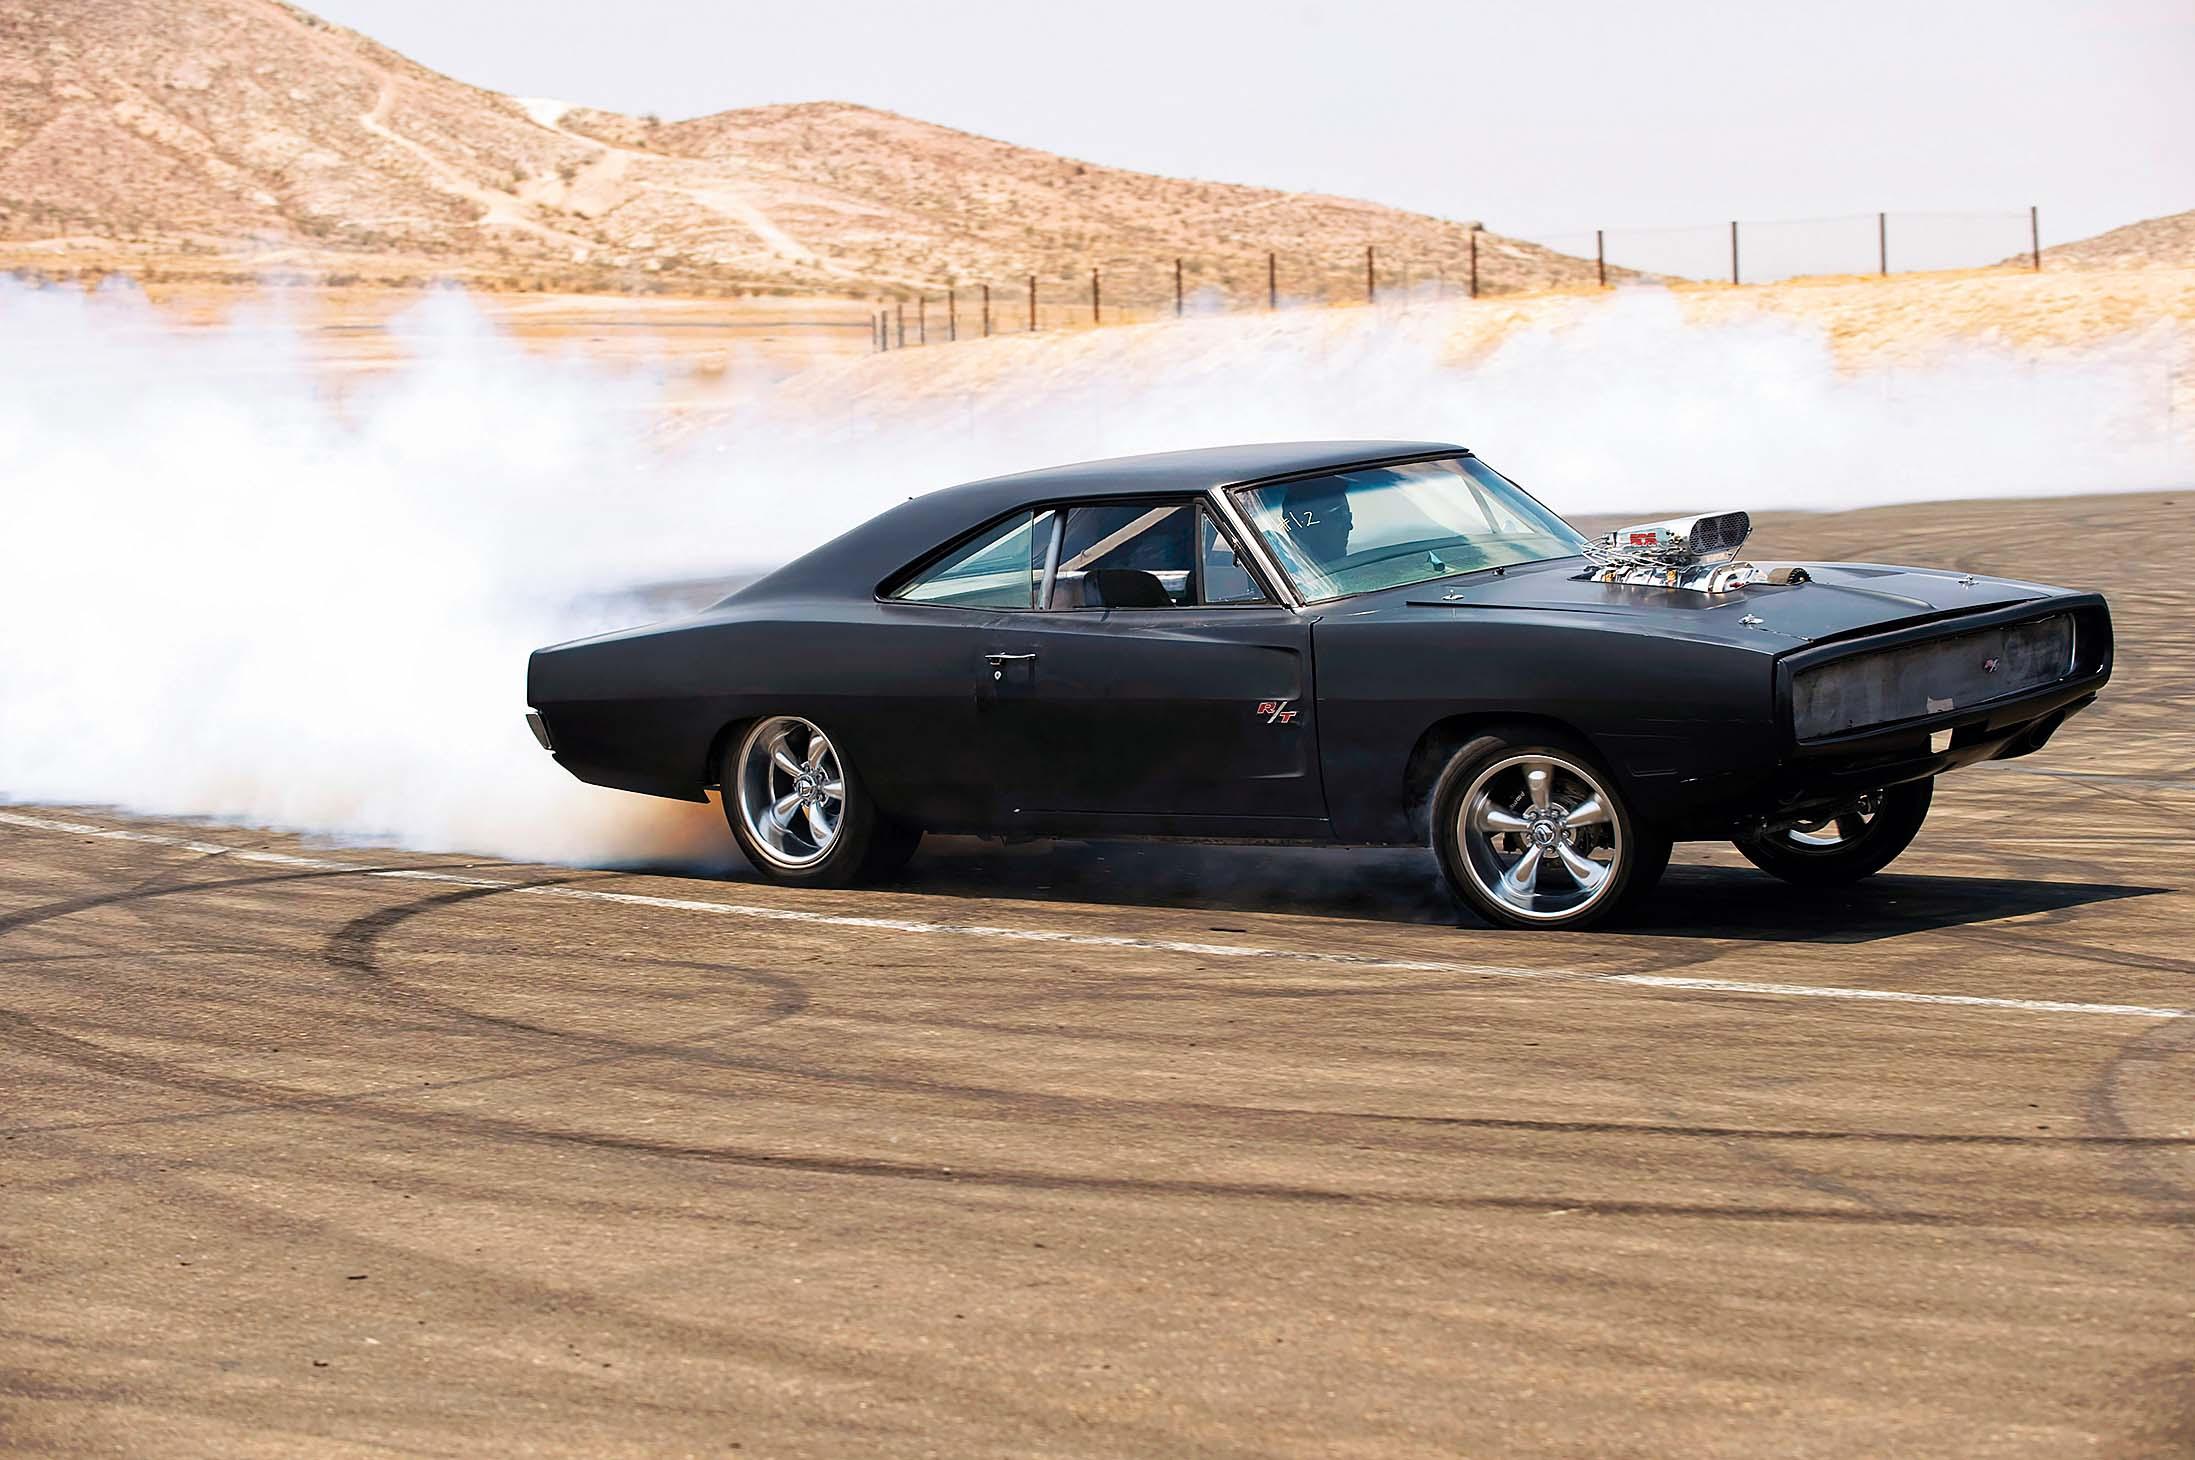 FAST & FURIOUS, (aka FAST AND FURIOUS), 1970 Dodge Charger, 2009, © Universal/courtesy Everett Collection